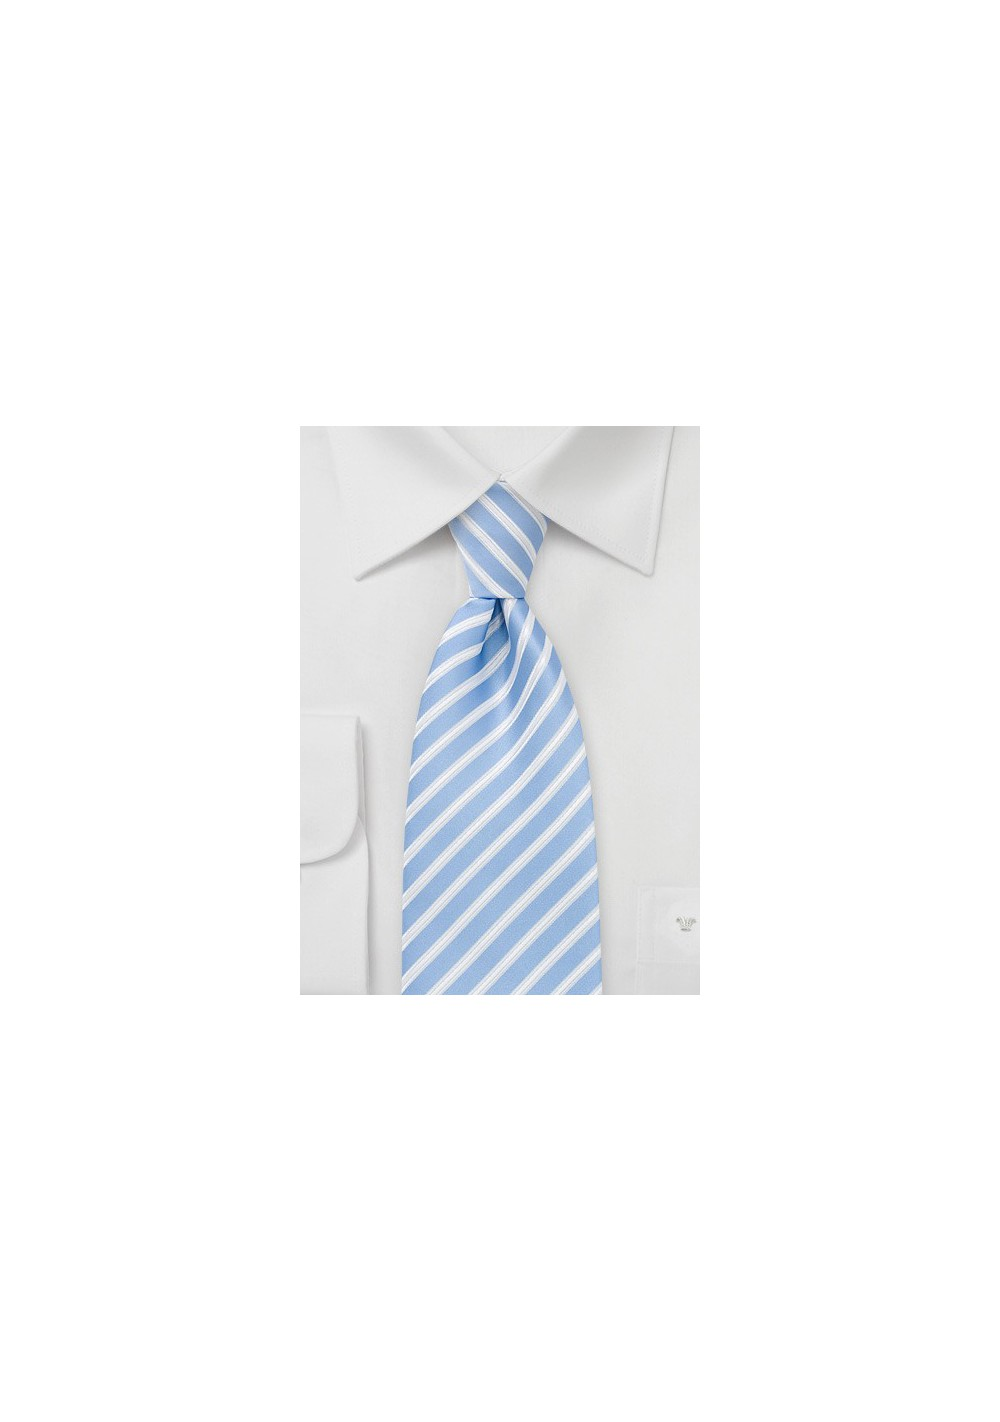 Striped Tie in Summer Blue